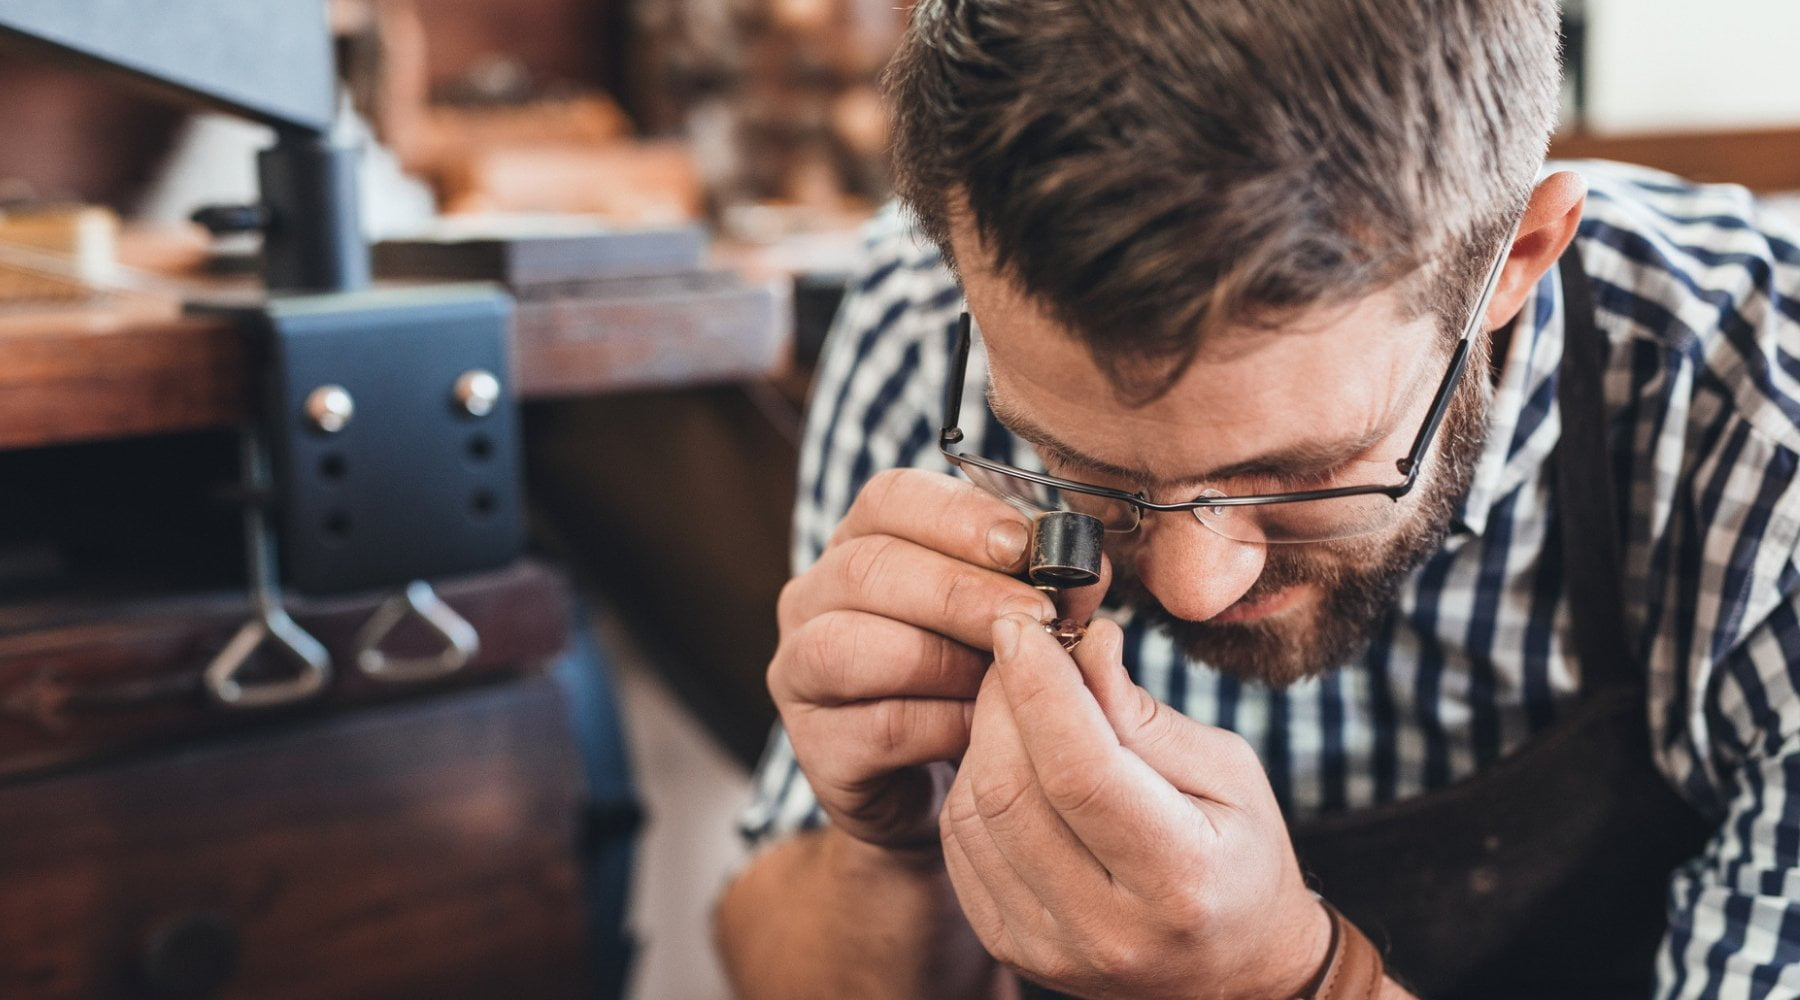 Tips for Finding Reputable Jewelers You Can Trust